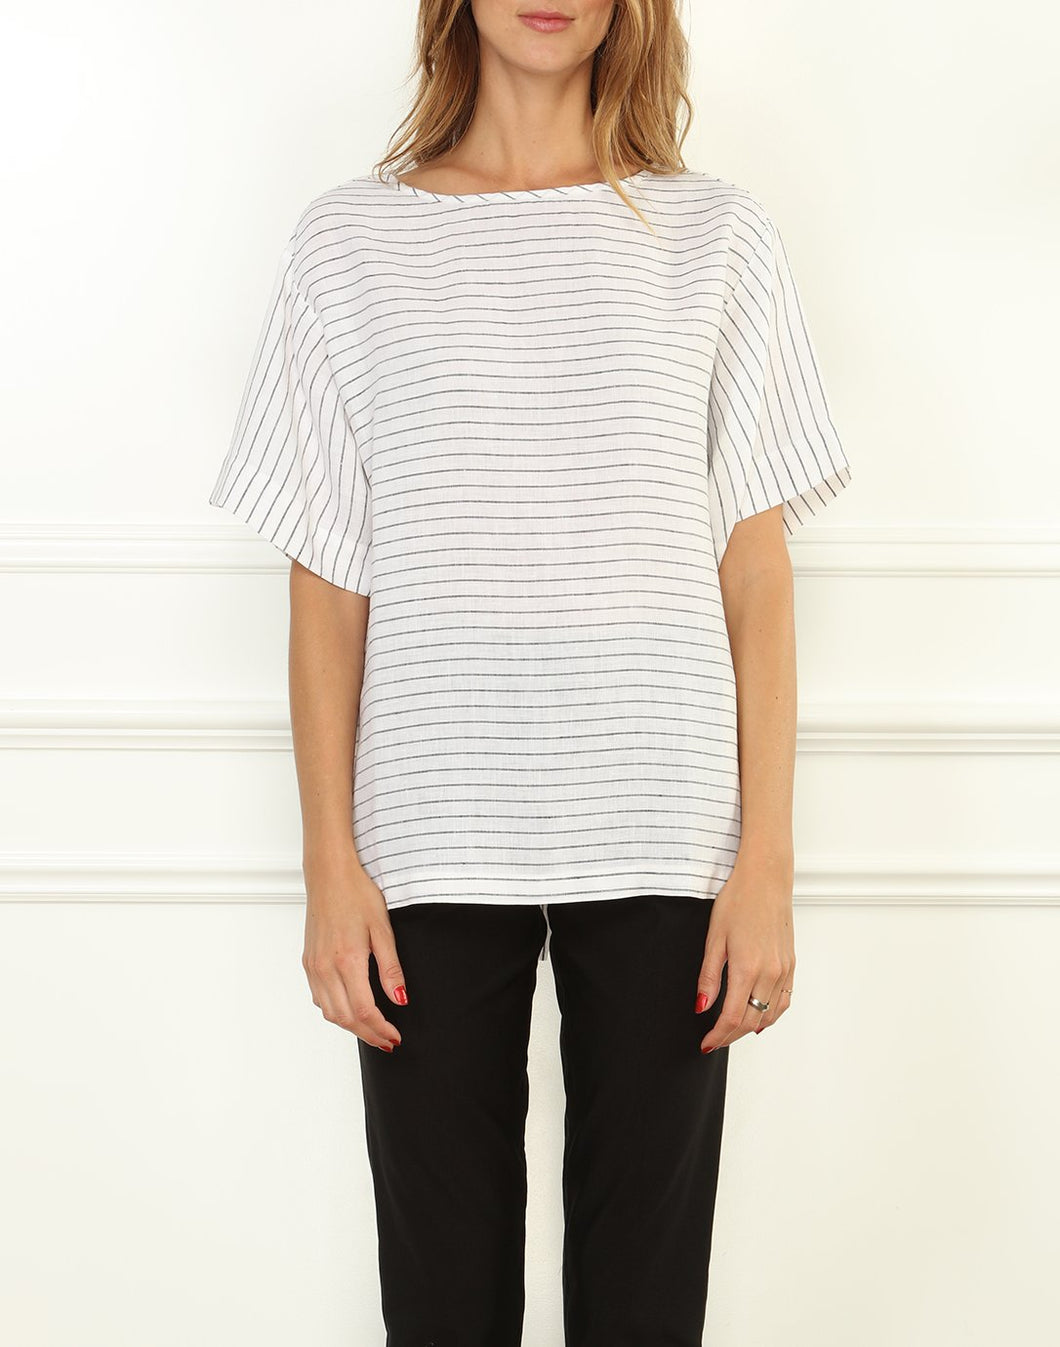 Fiona Luxe Linen Button Back Tee In White/Black Stripe